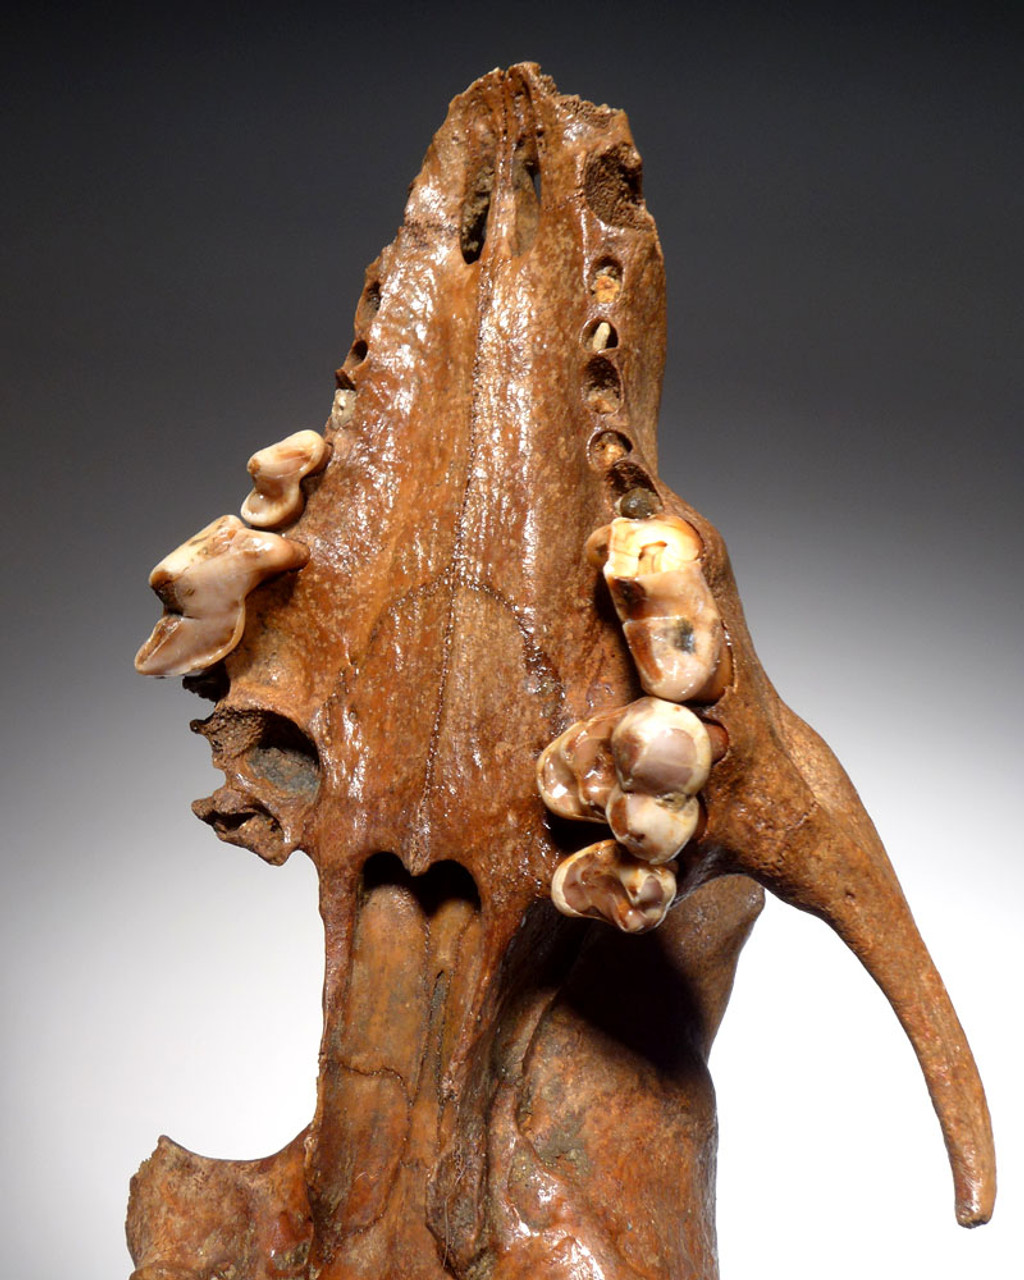 EXTREMELY RARE FOSSIL CANID WOLF SKULL FROM ICE AGE CENTRAL EUROPE  *LMX273